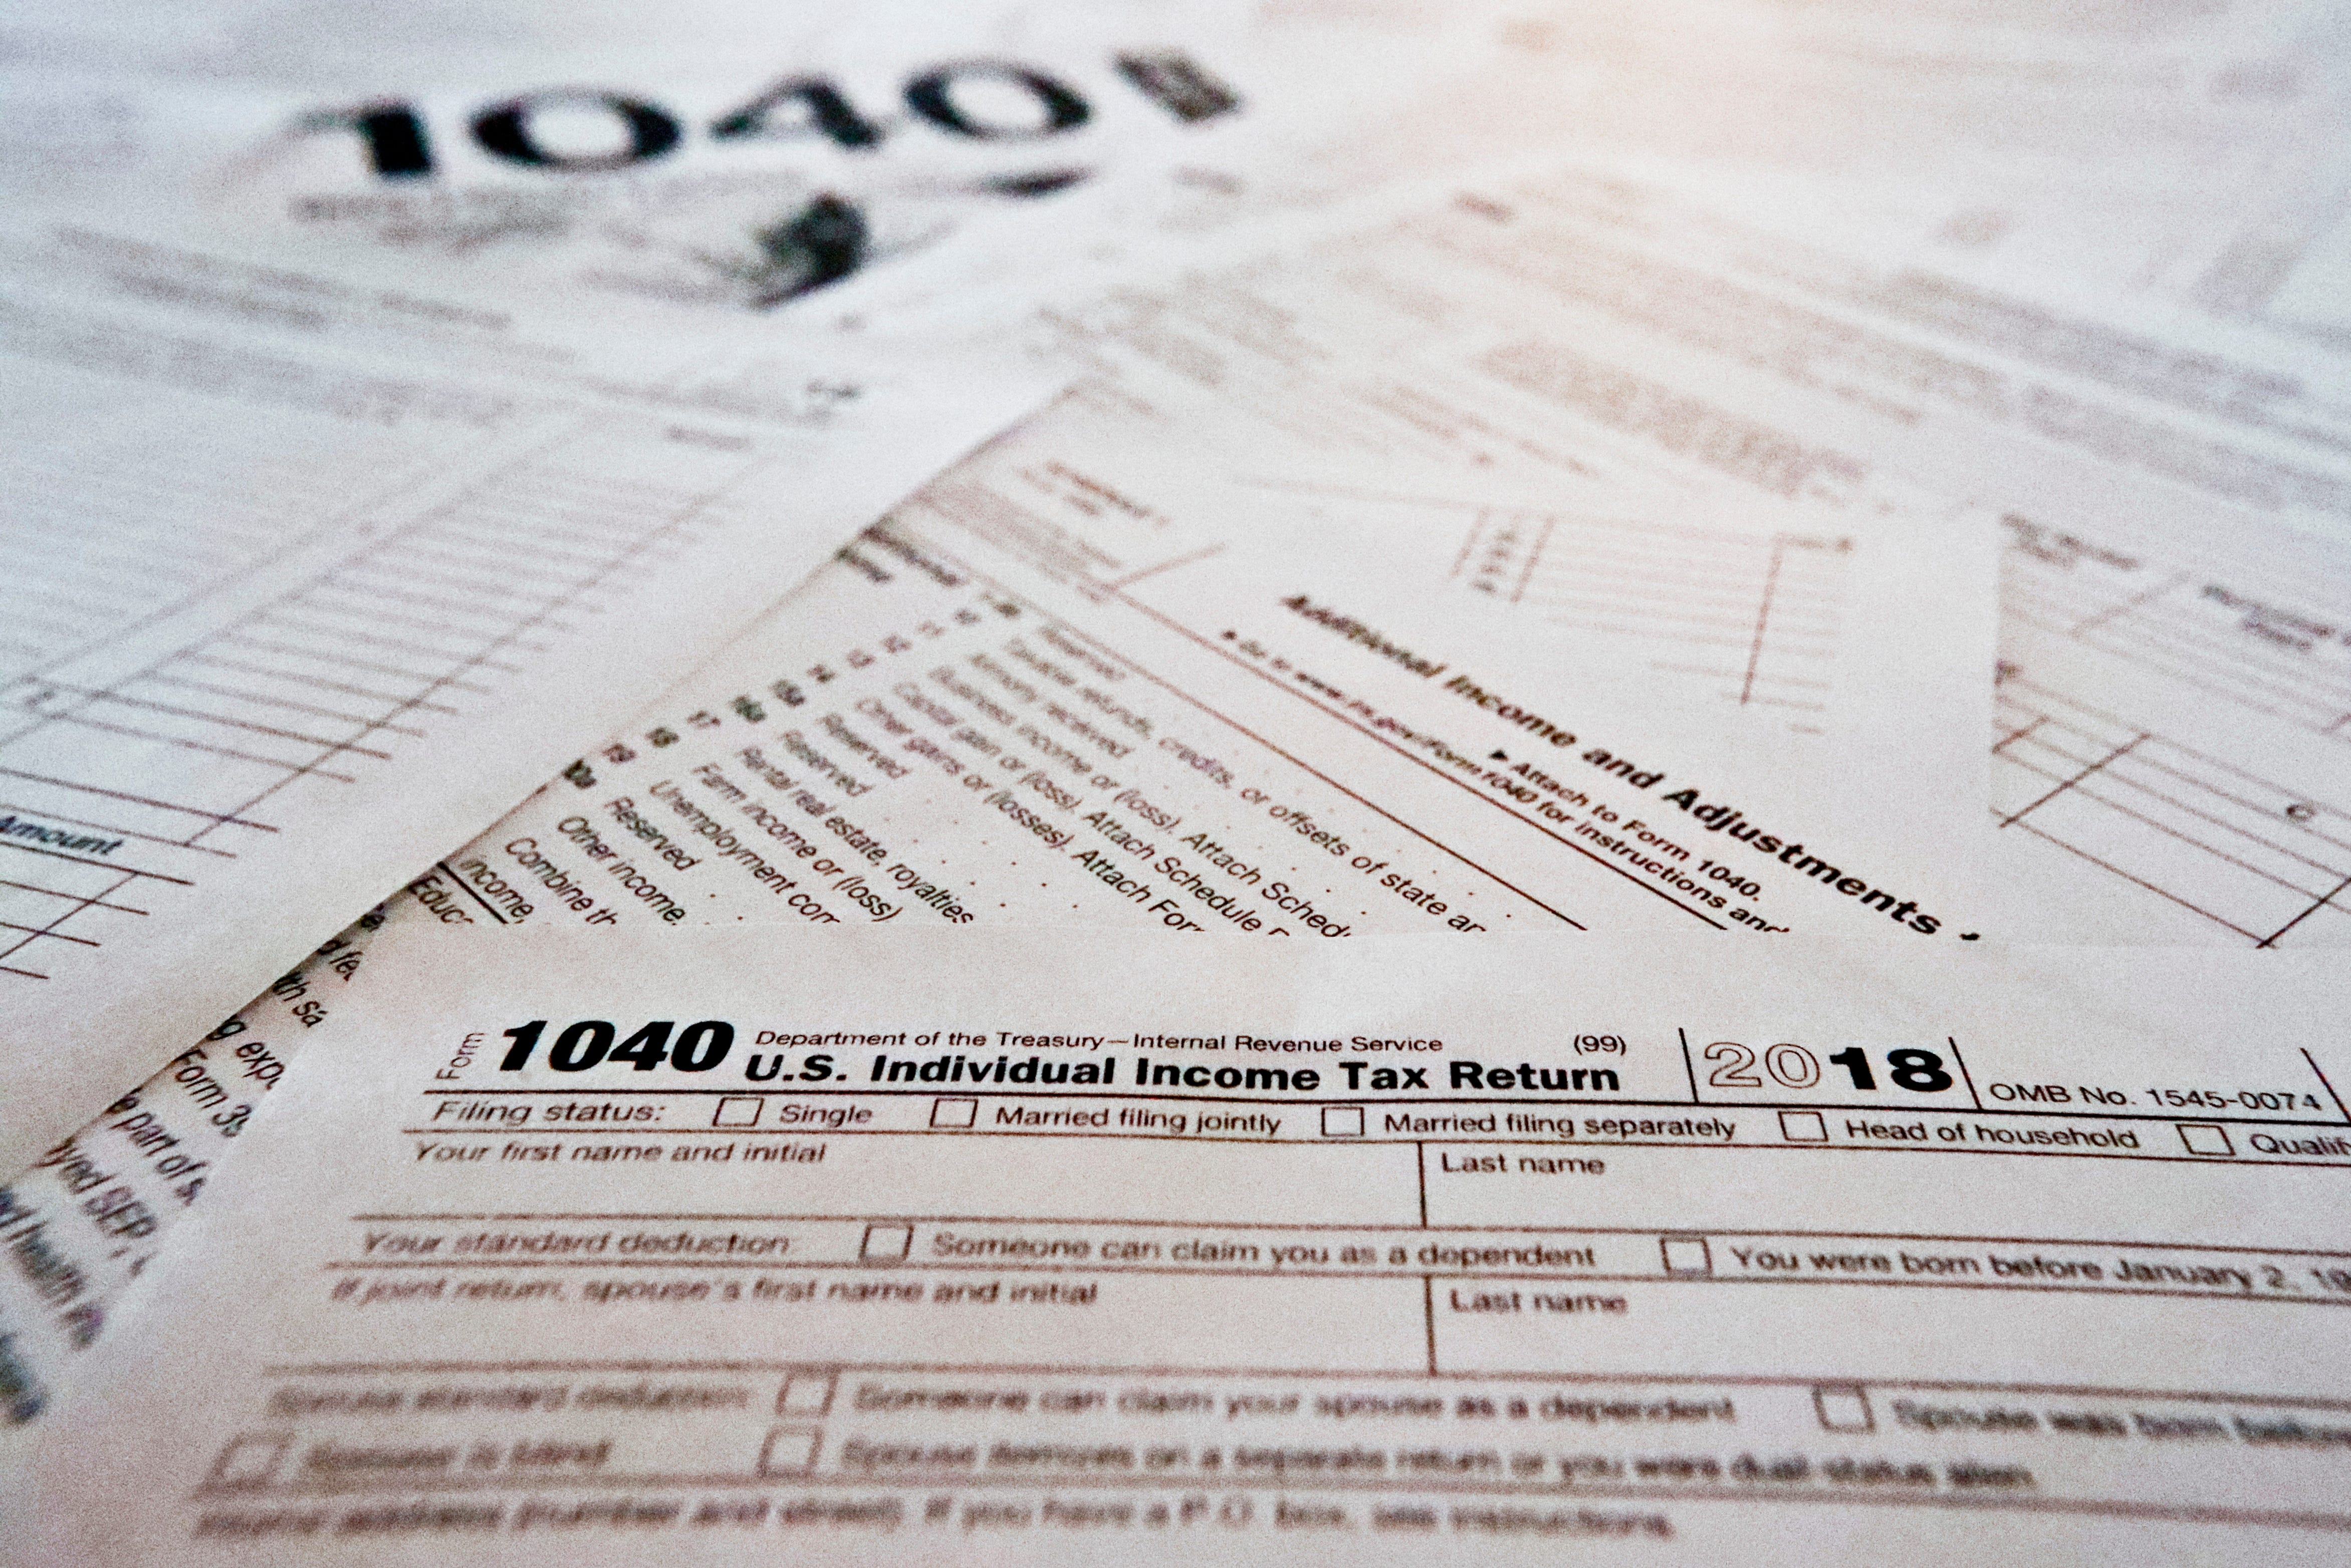 IRS extends tax deadline to June 15 for Texas because of winter storm, other states could also get relief